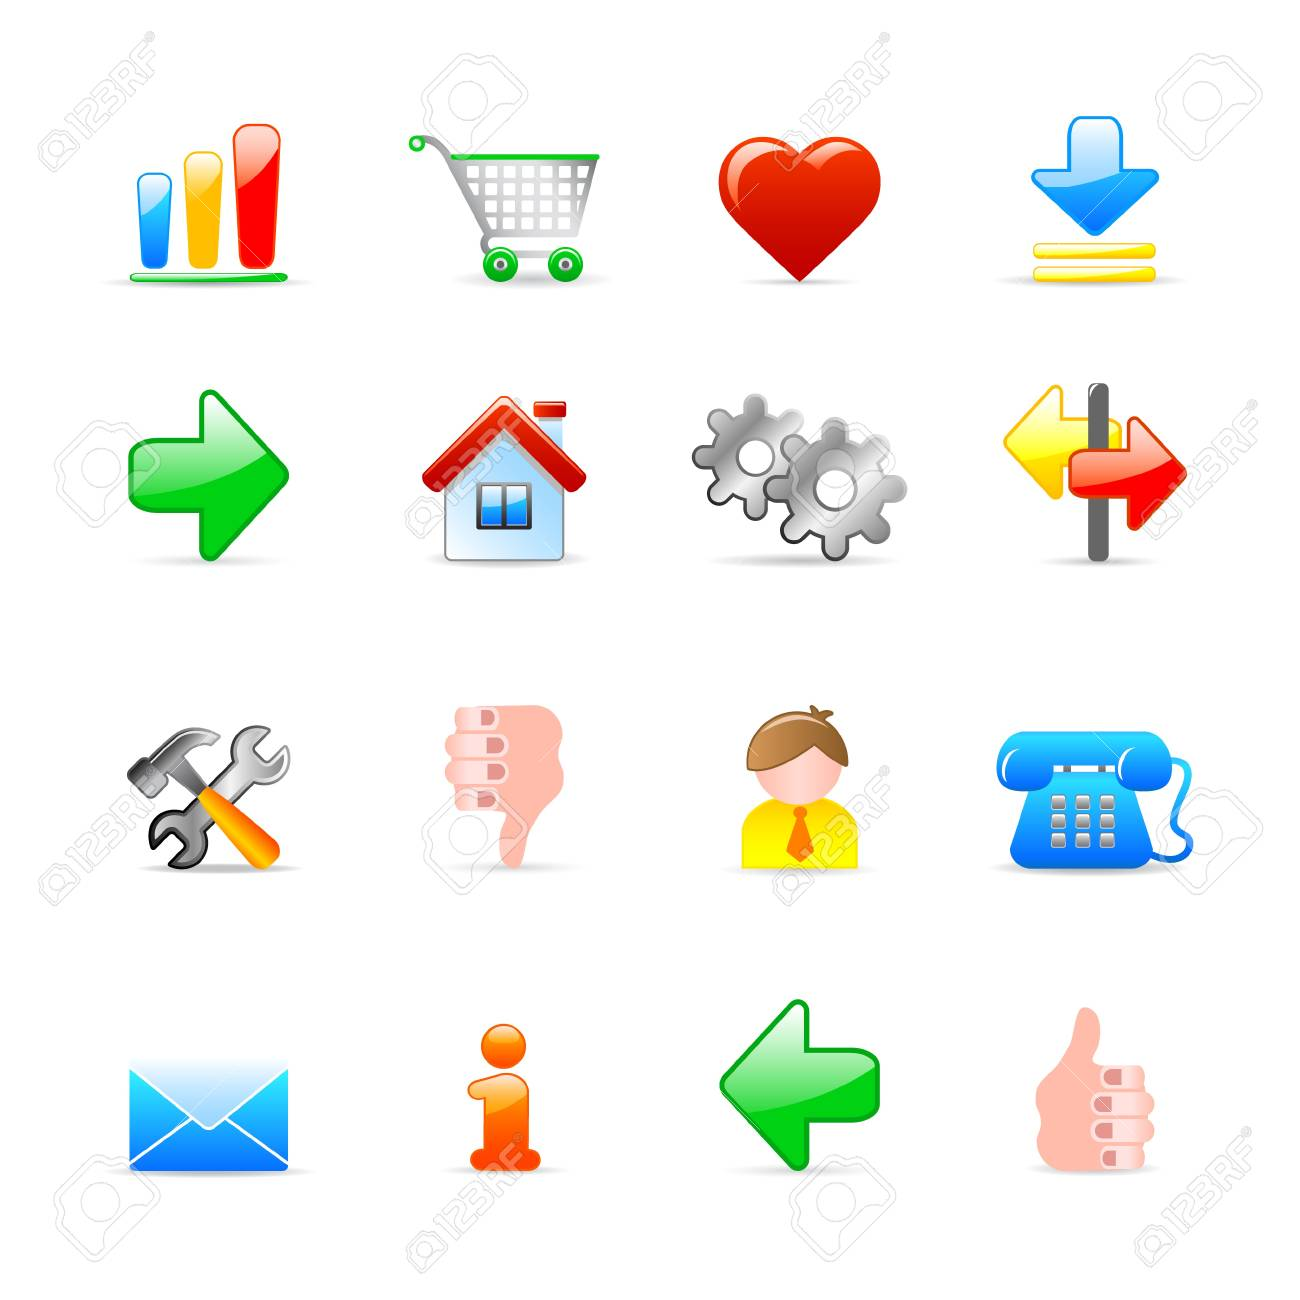 web icons Stock Vector - 11454033